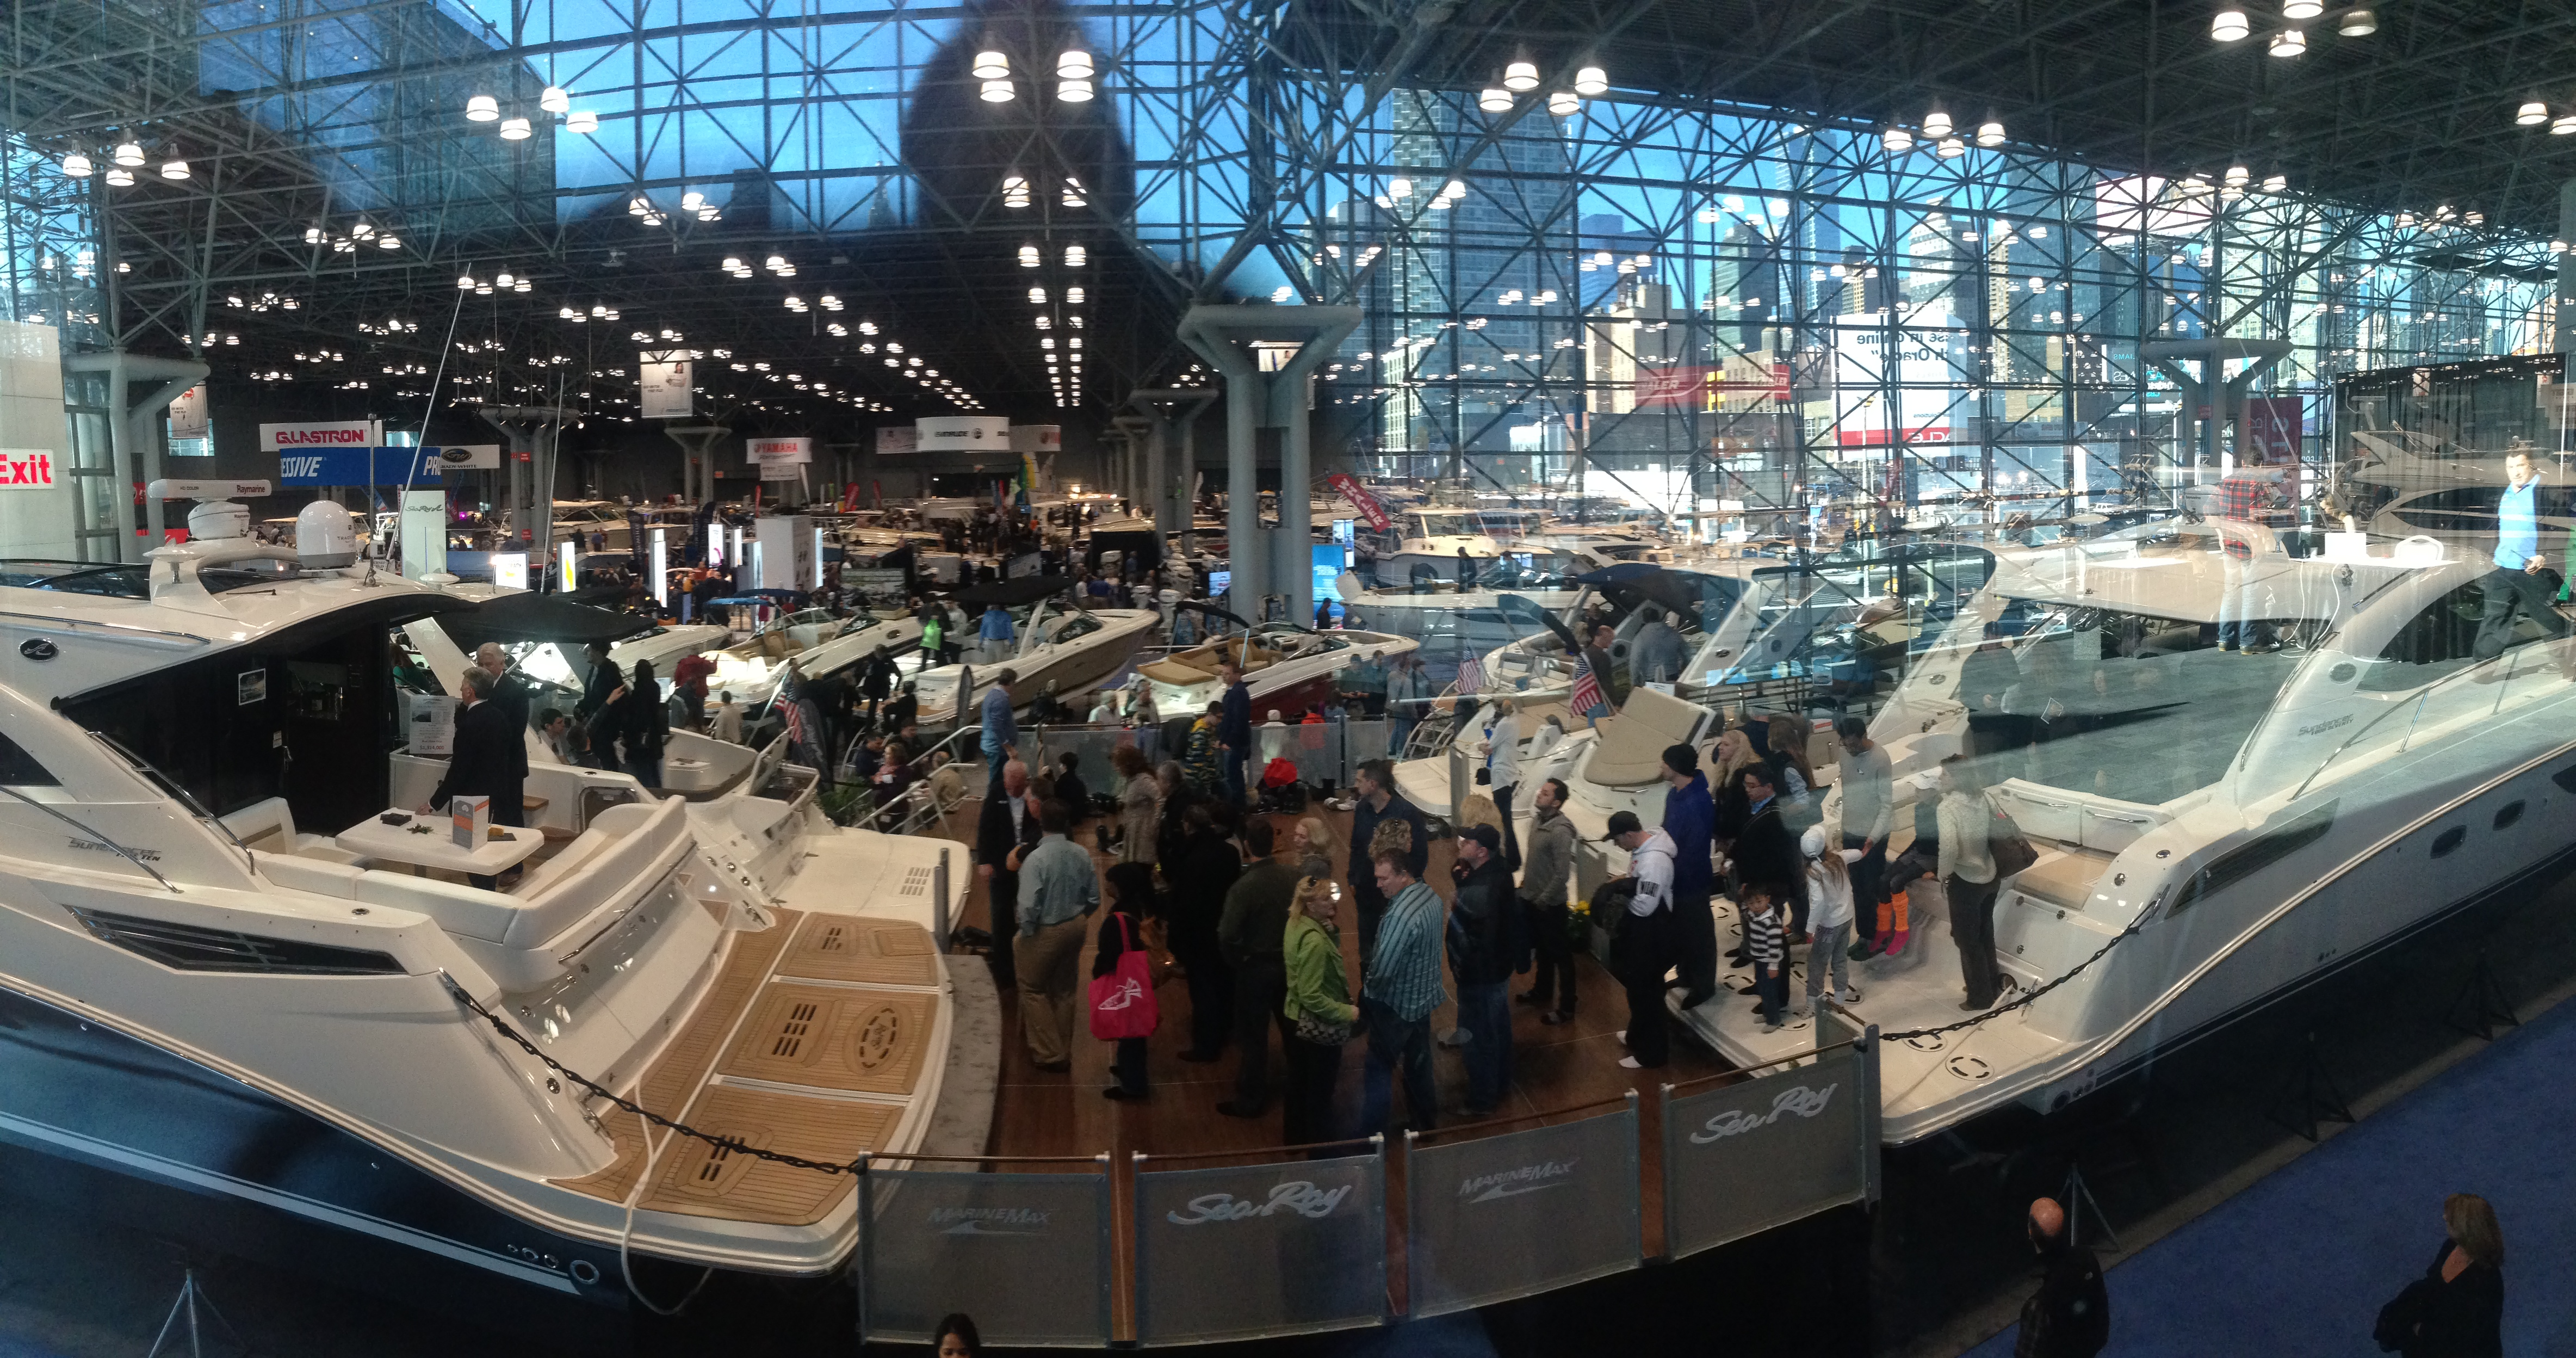 New York Boat Show 2019